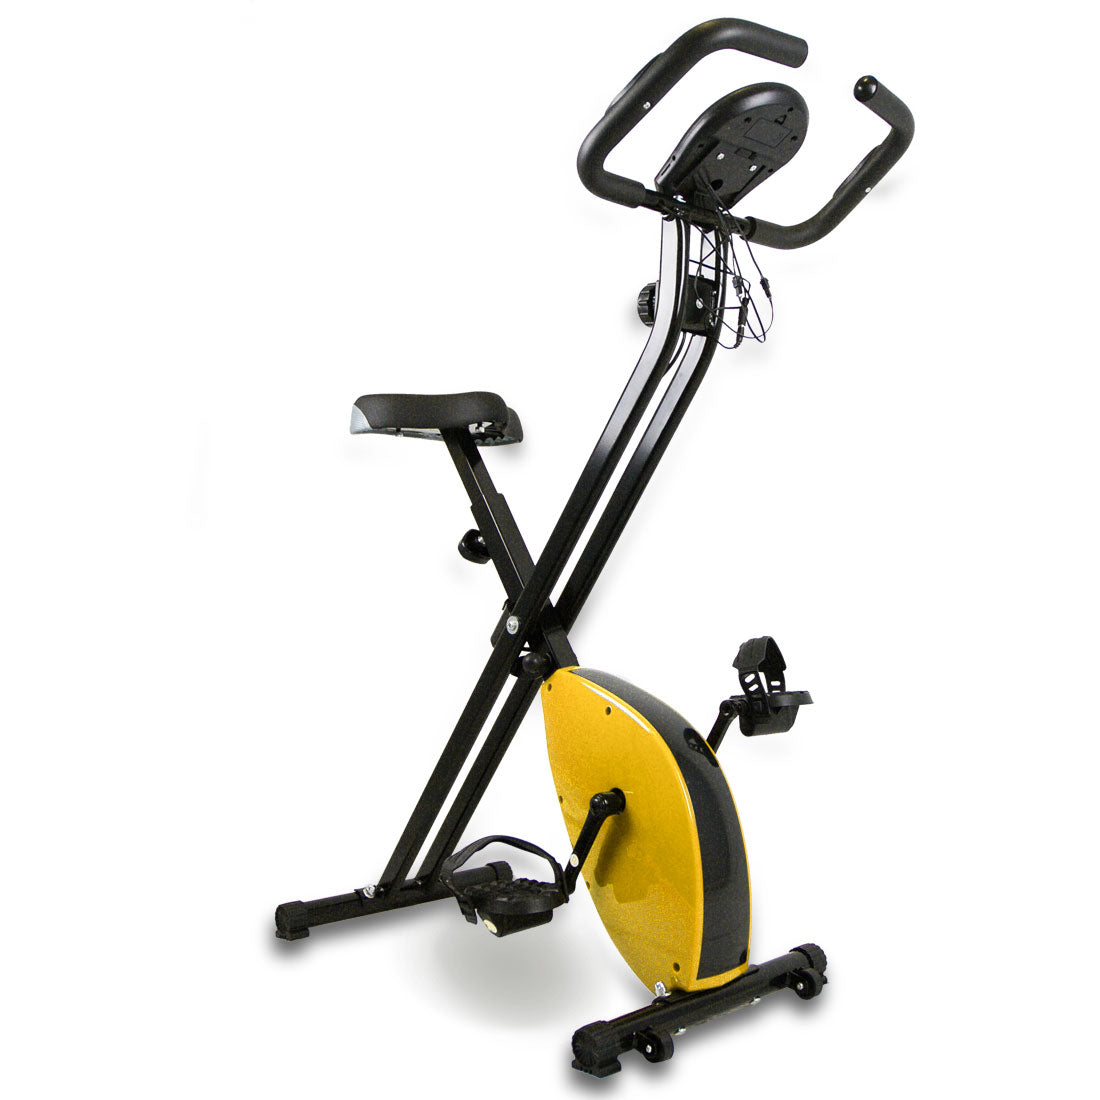 Folding Magnetic Upright Bicycle Training Fitness Stationary Flywheel X-Bike Yellow